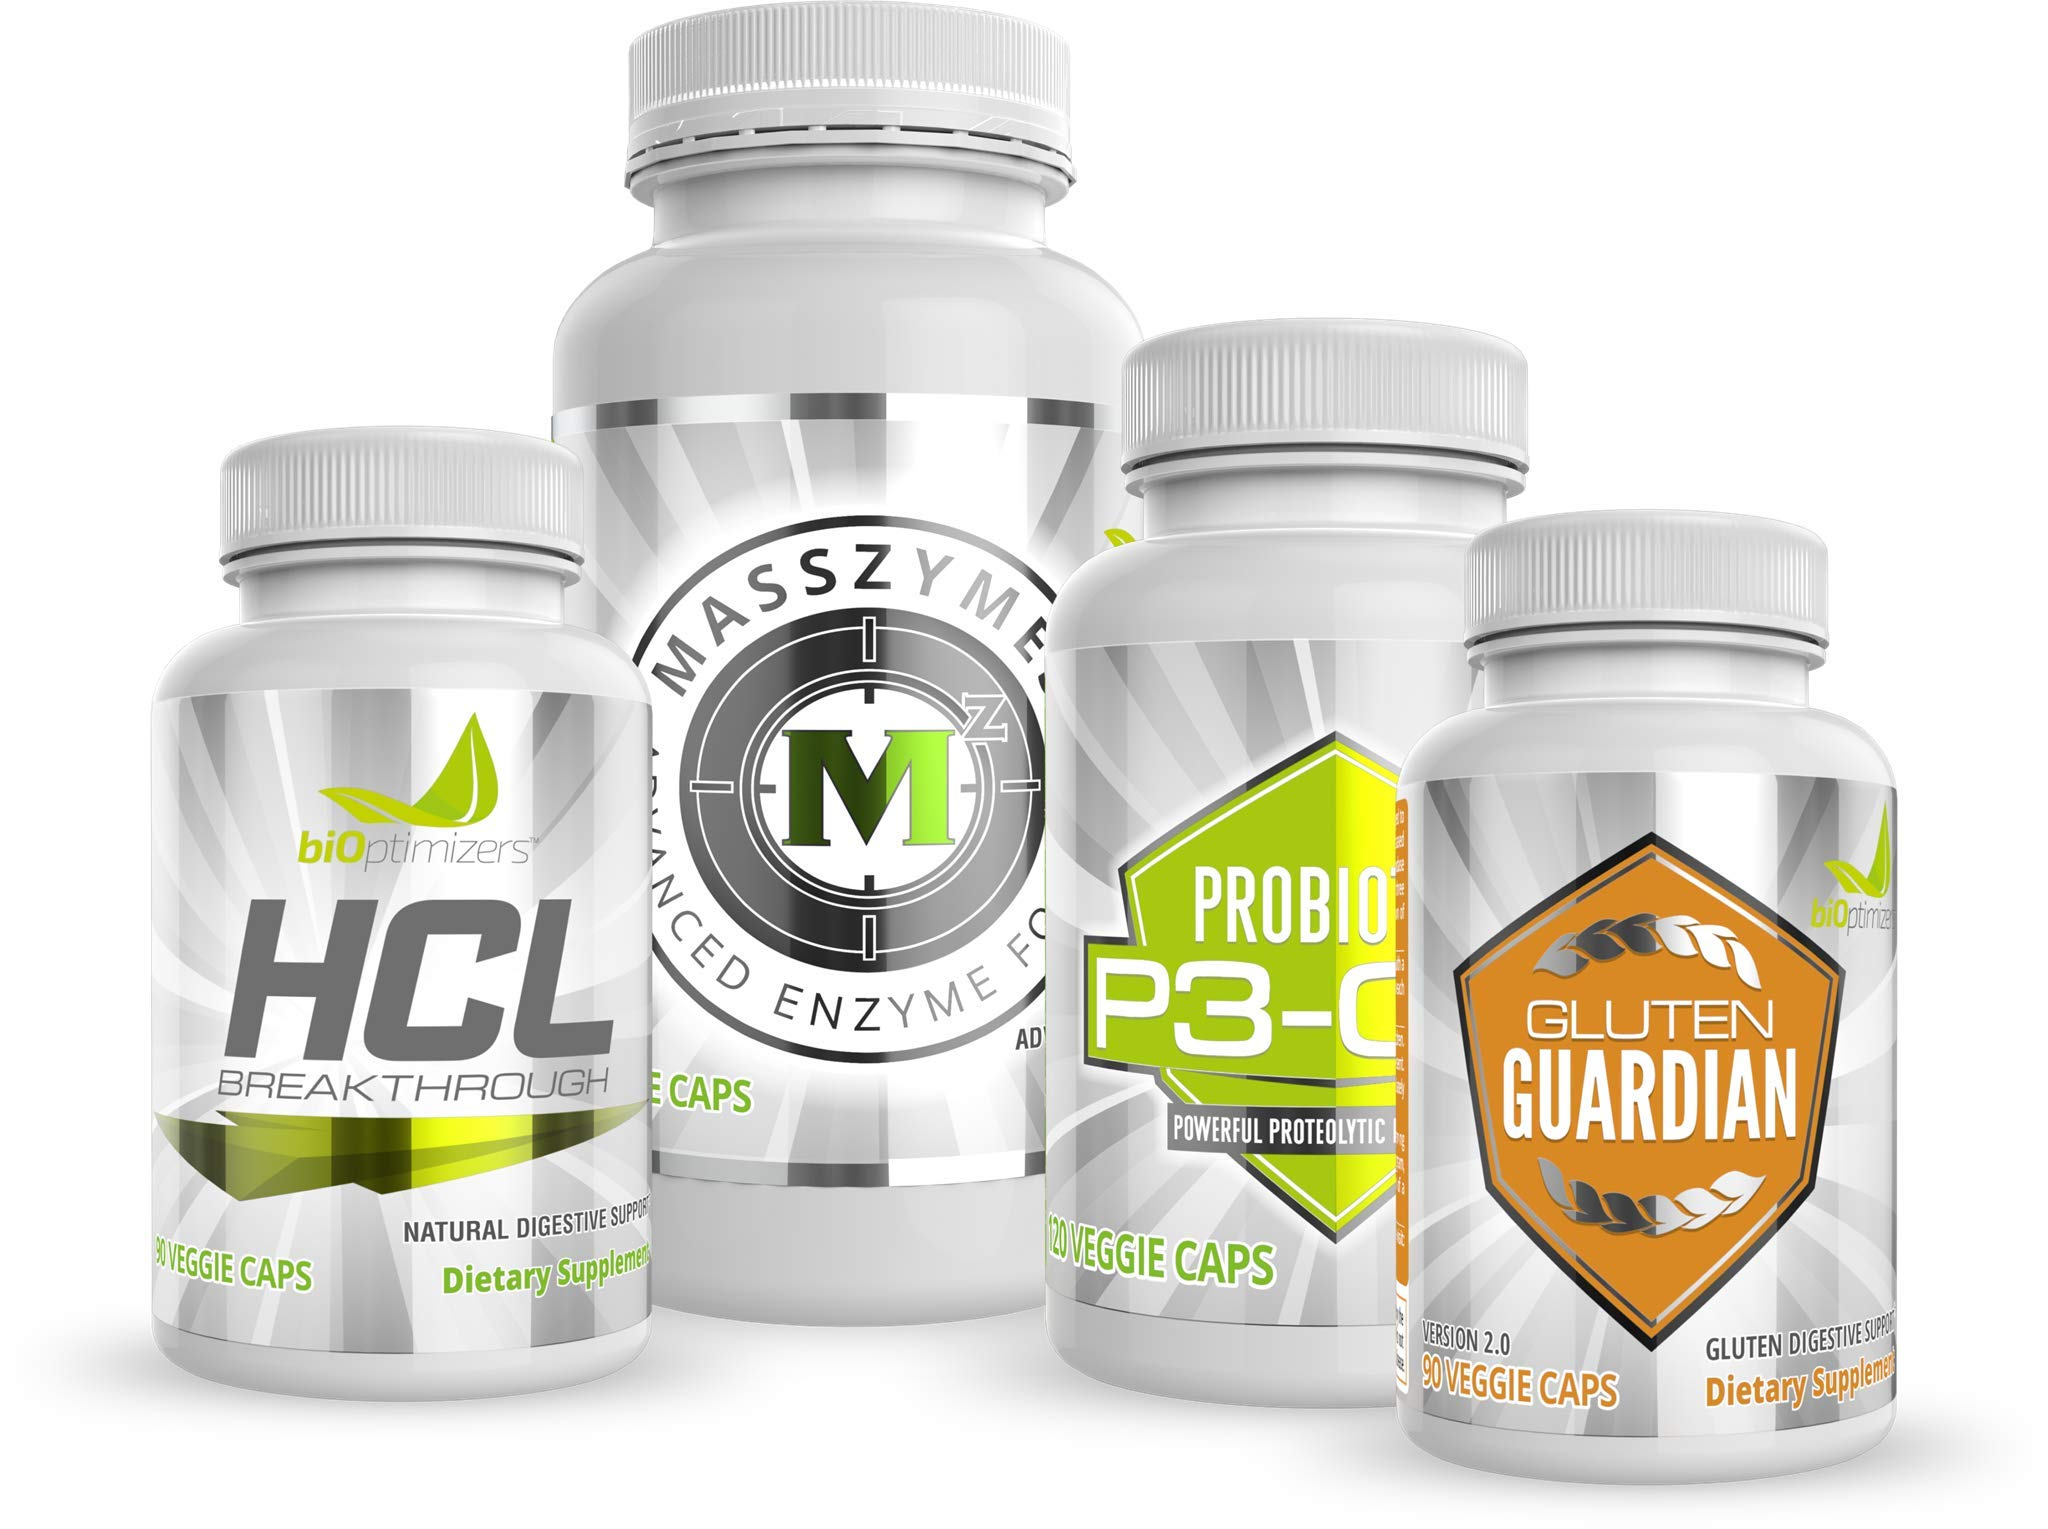 BiOptimizers - Essential Digestive Enzymes Bundle - P3-OM - Gluten Guardian - MassZymes - HCL Breakthrough - Doctor-Formulated